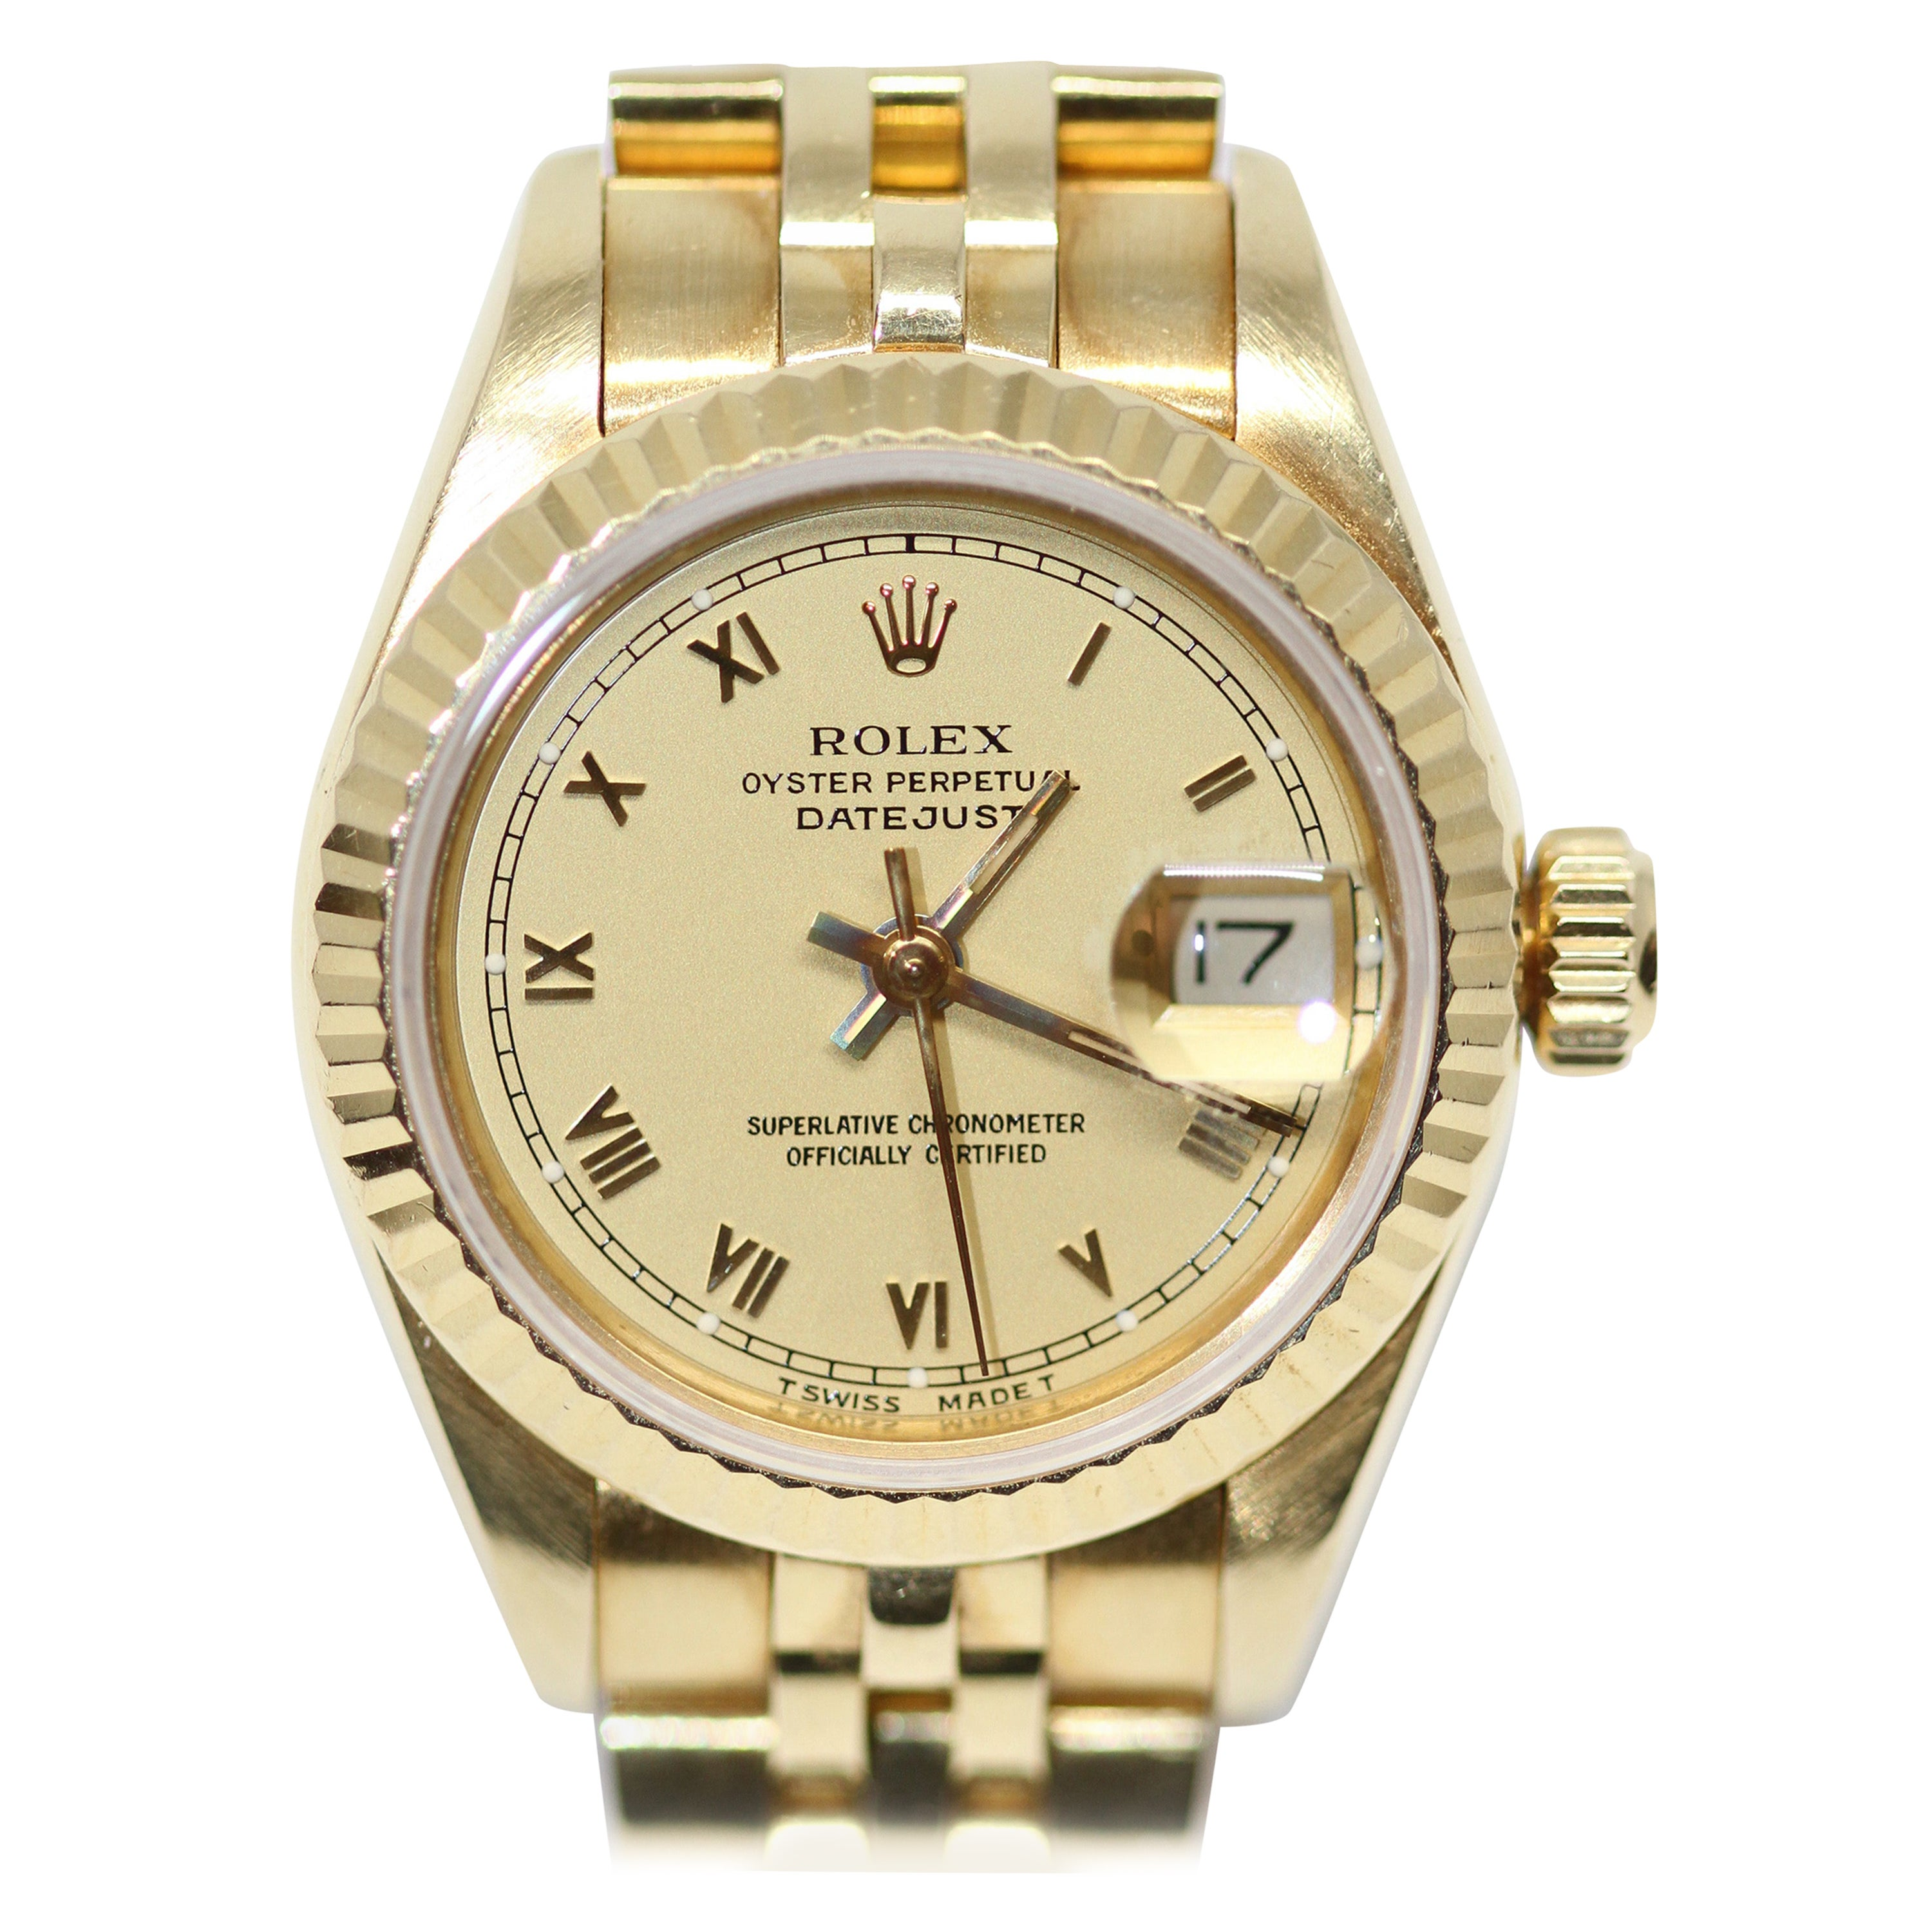 Rolex Oyster Perpetual Date Just Lady 18K Gold Watch